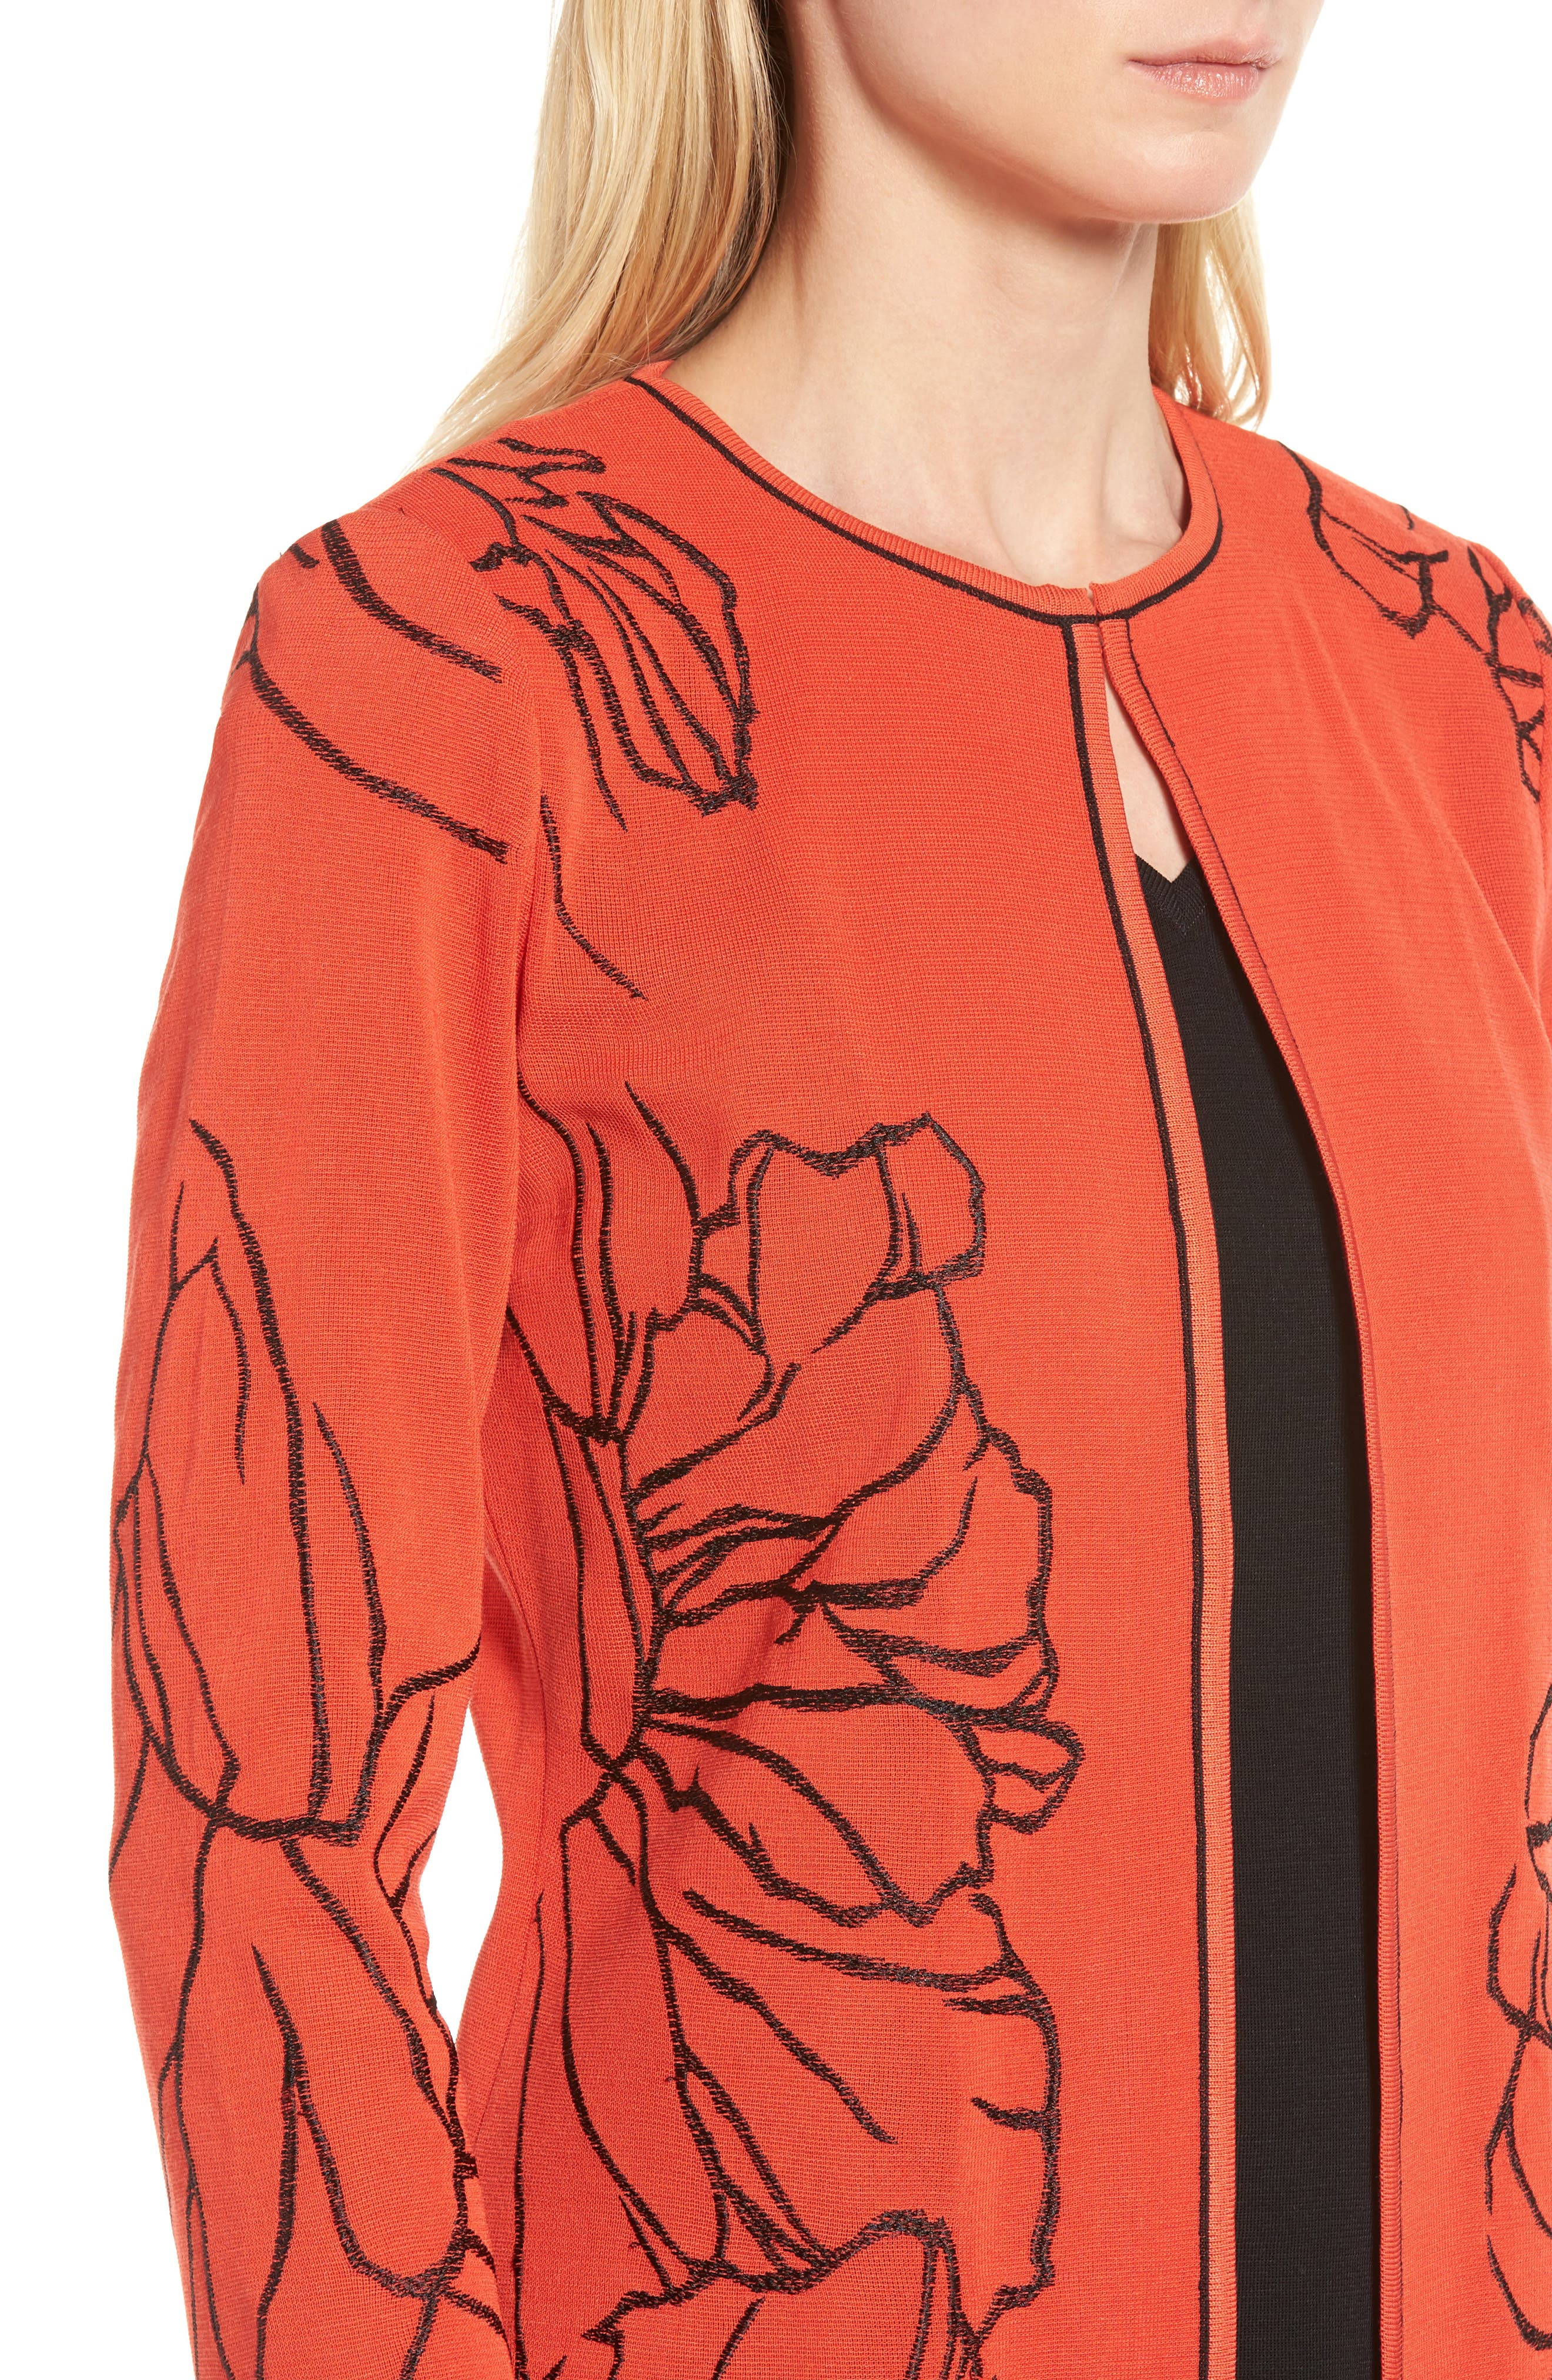 Embroidered Knit Jacket,                             Alternate thumbnail 4, color,                             Flame/ Black